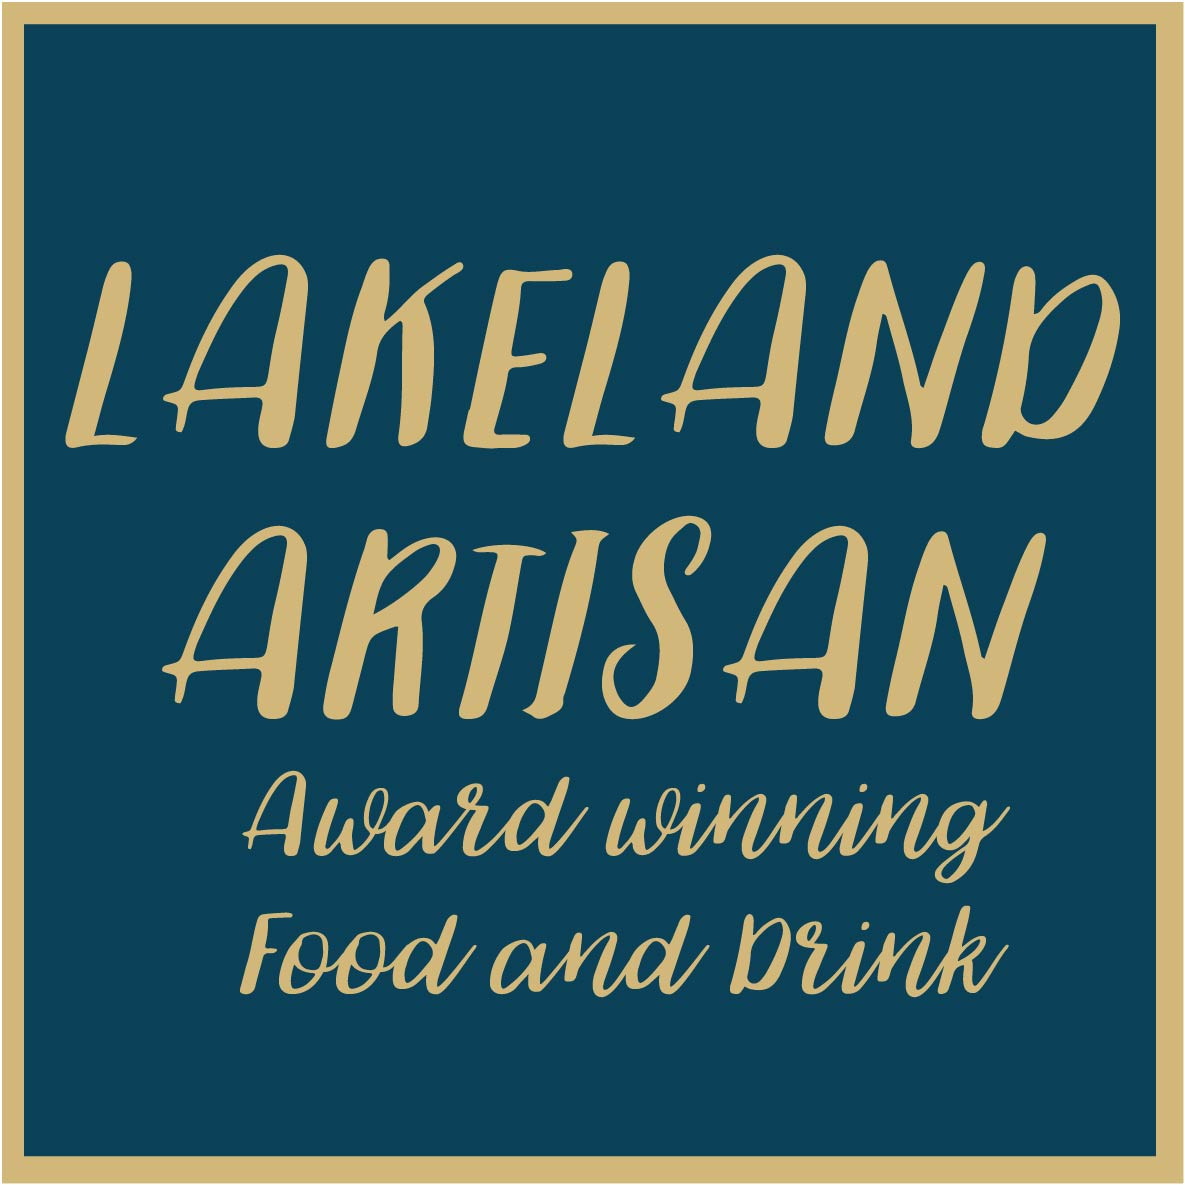 Lakeland Artisan Ltd